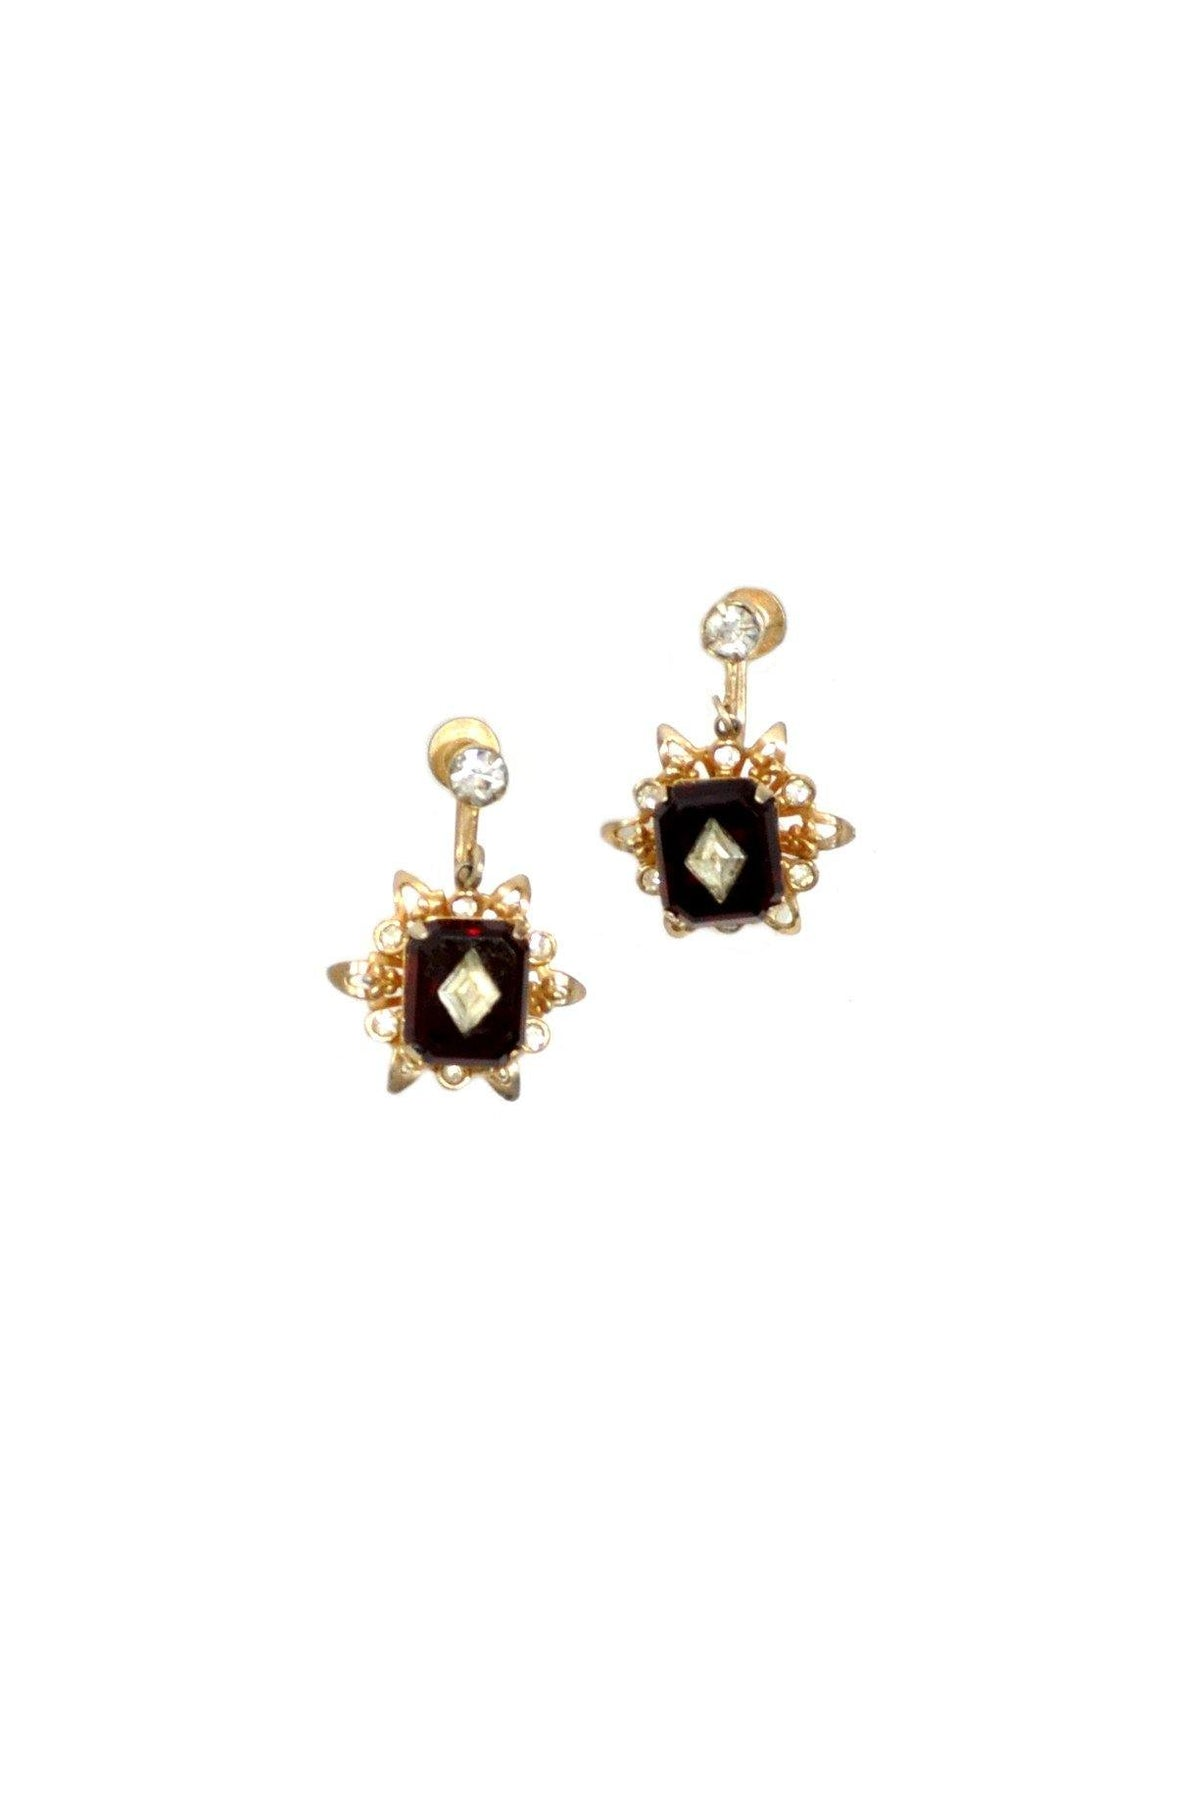 50's Vintage Rhinestone Drop Clip-On Earrings